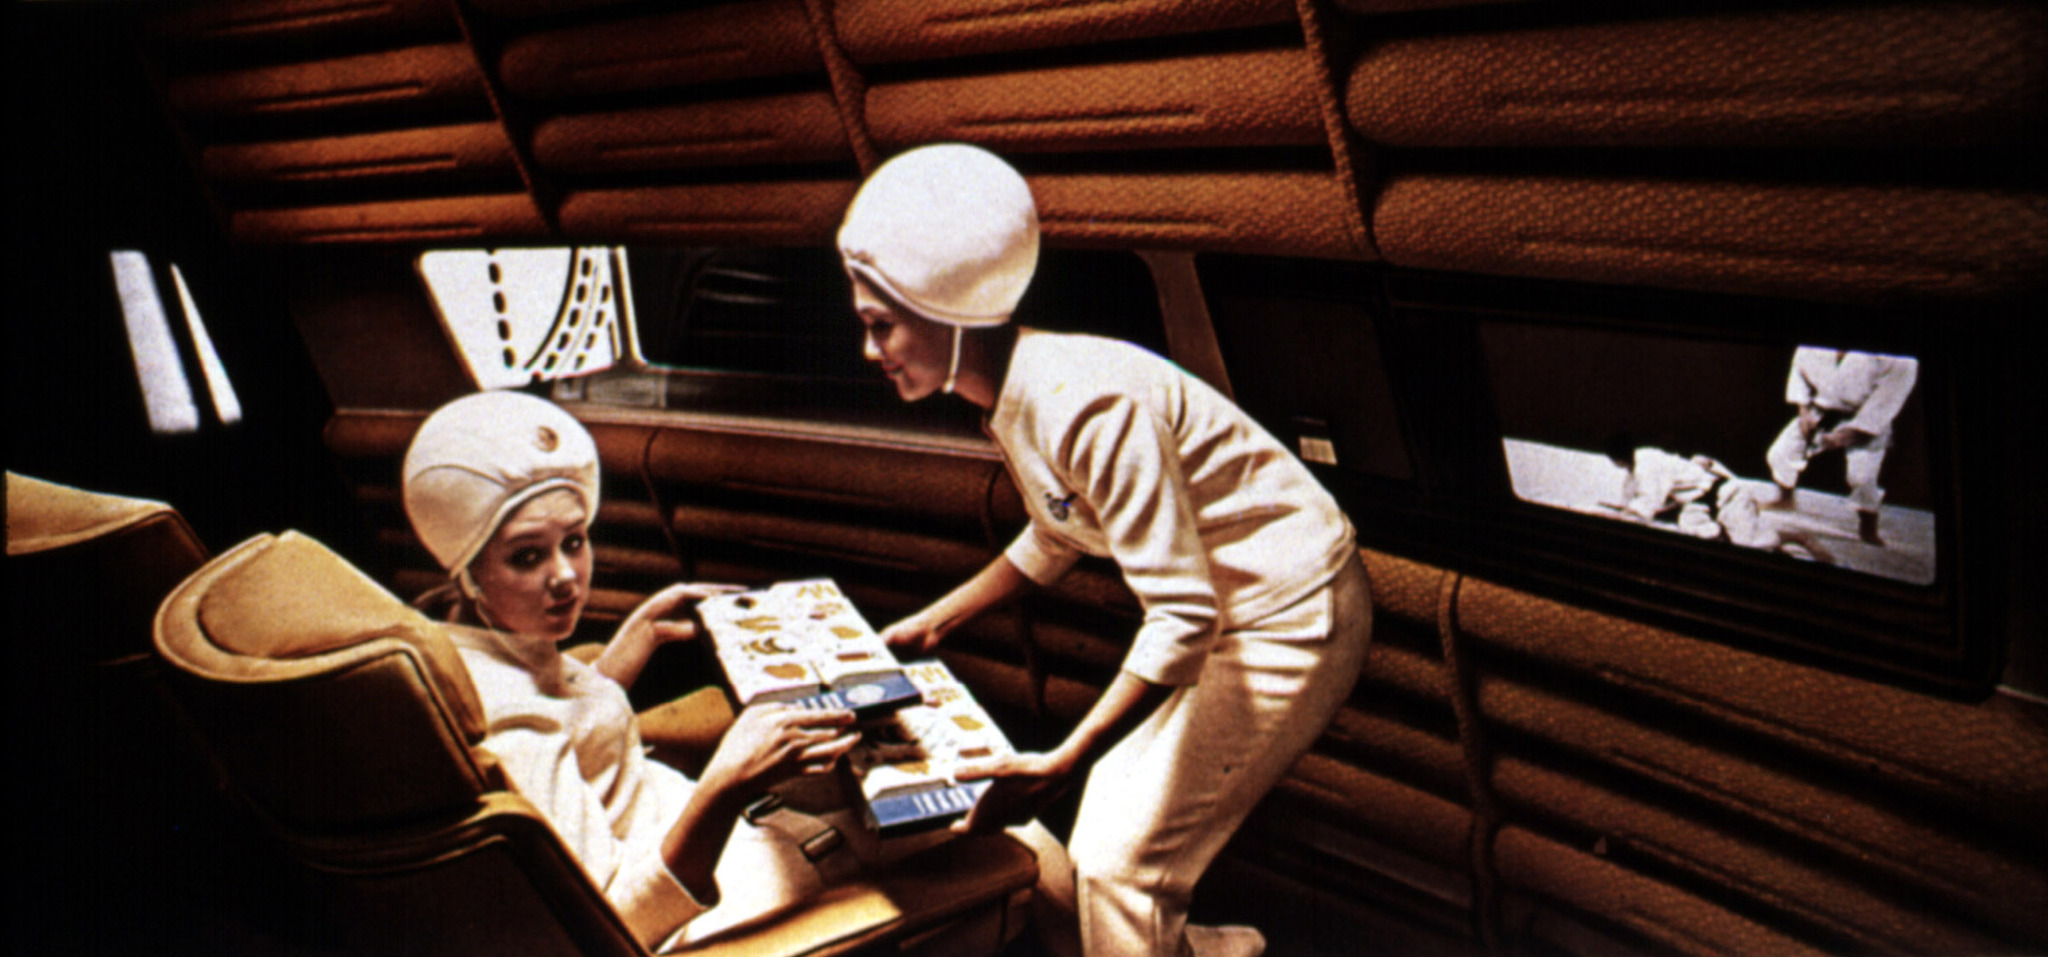 Penny Brahms and Edwina Carroll in 2001: A Space Odyssey (1968)